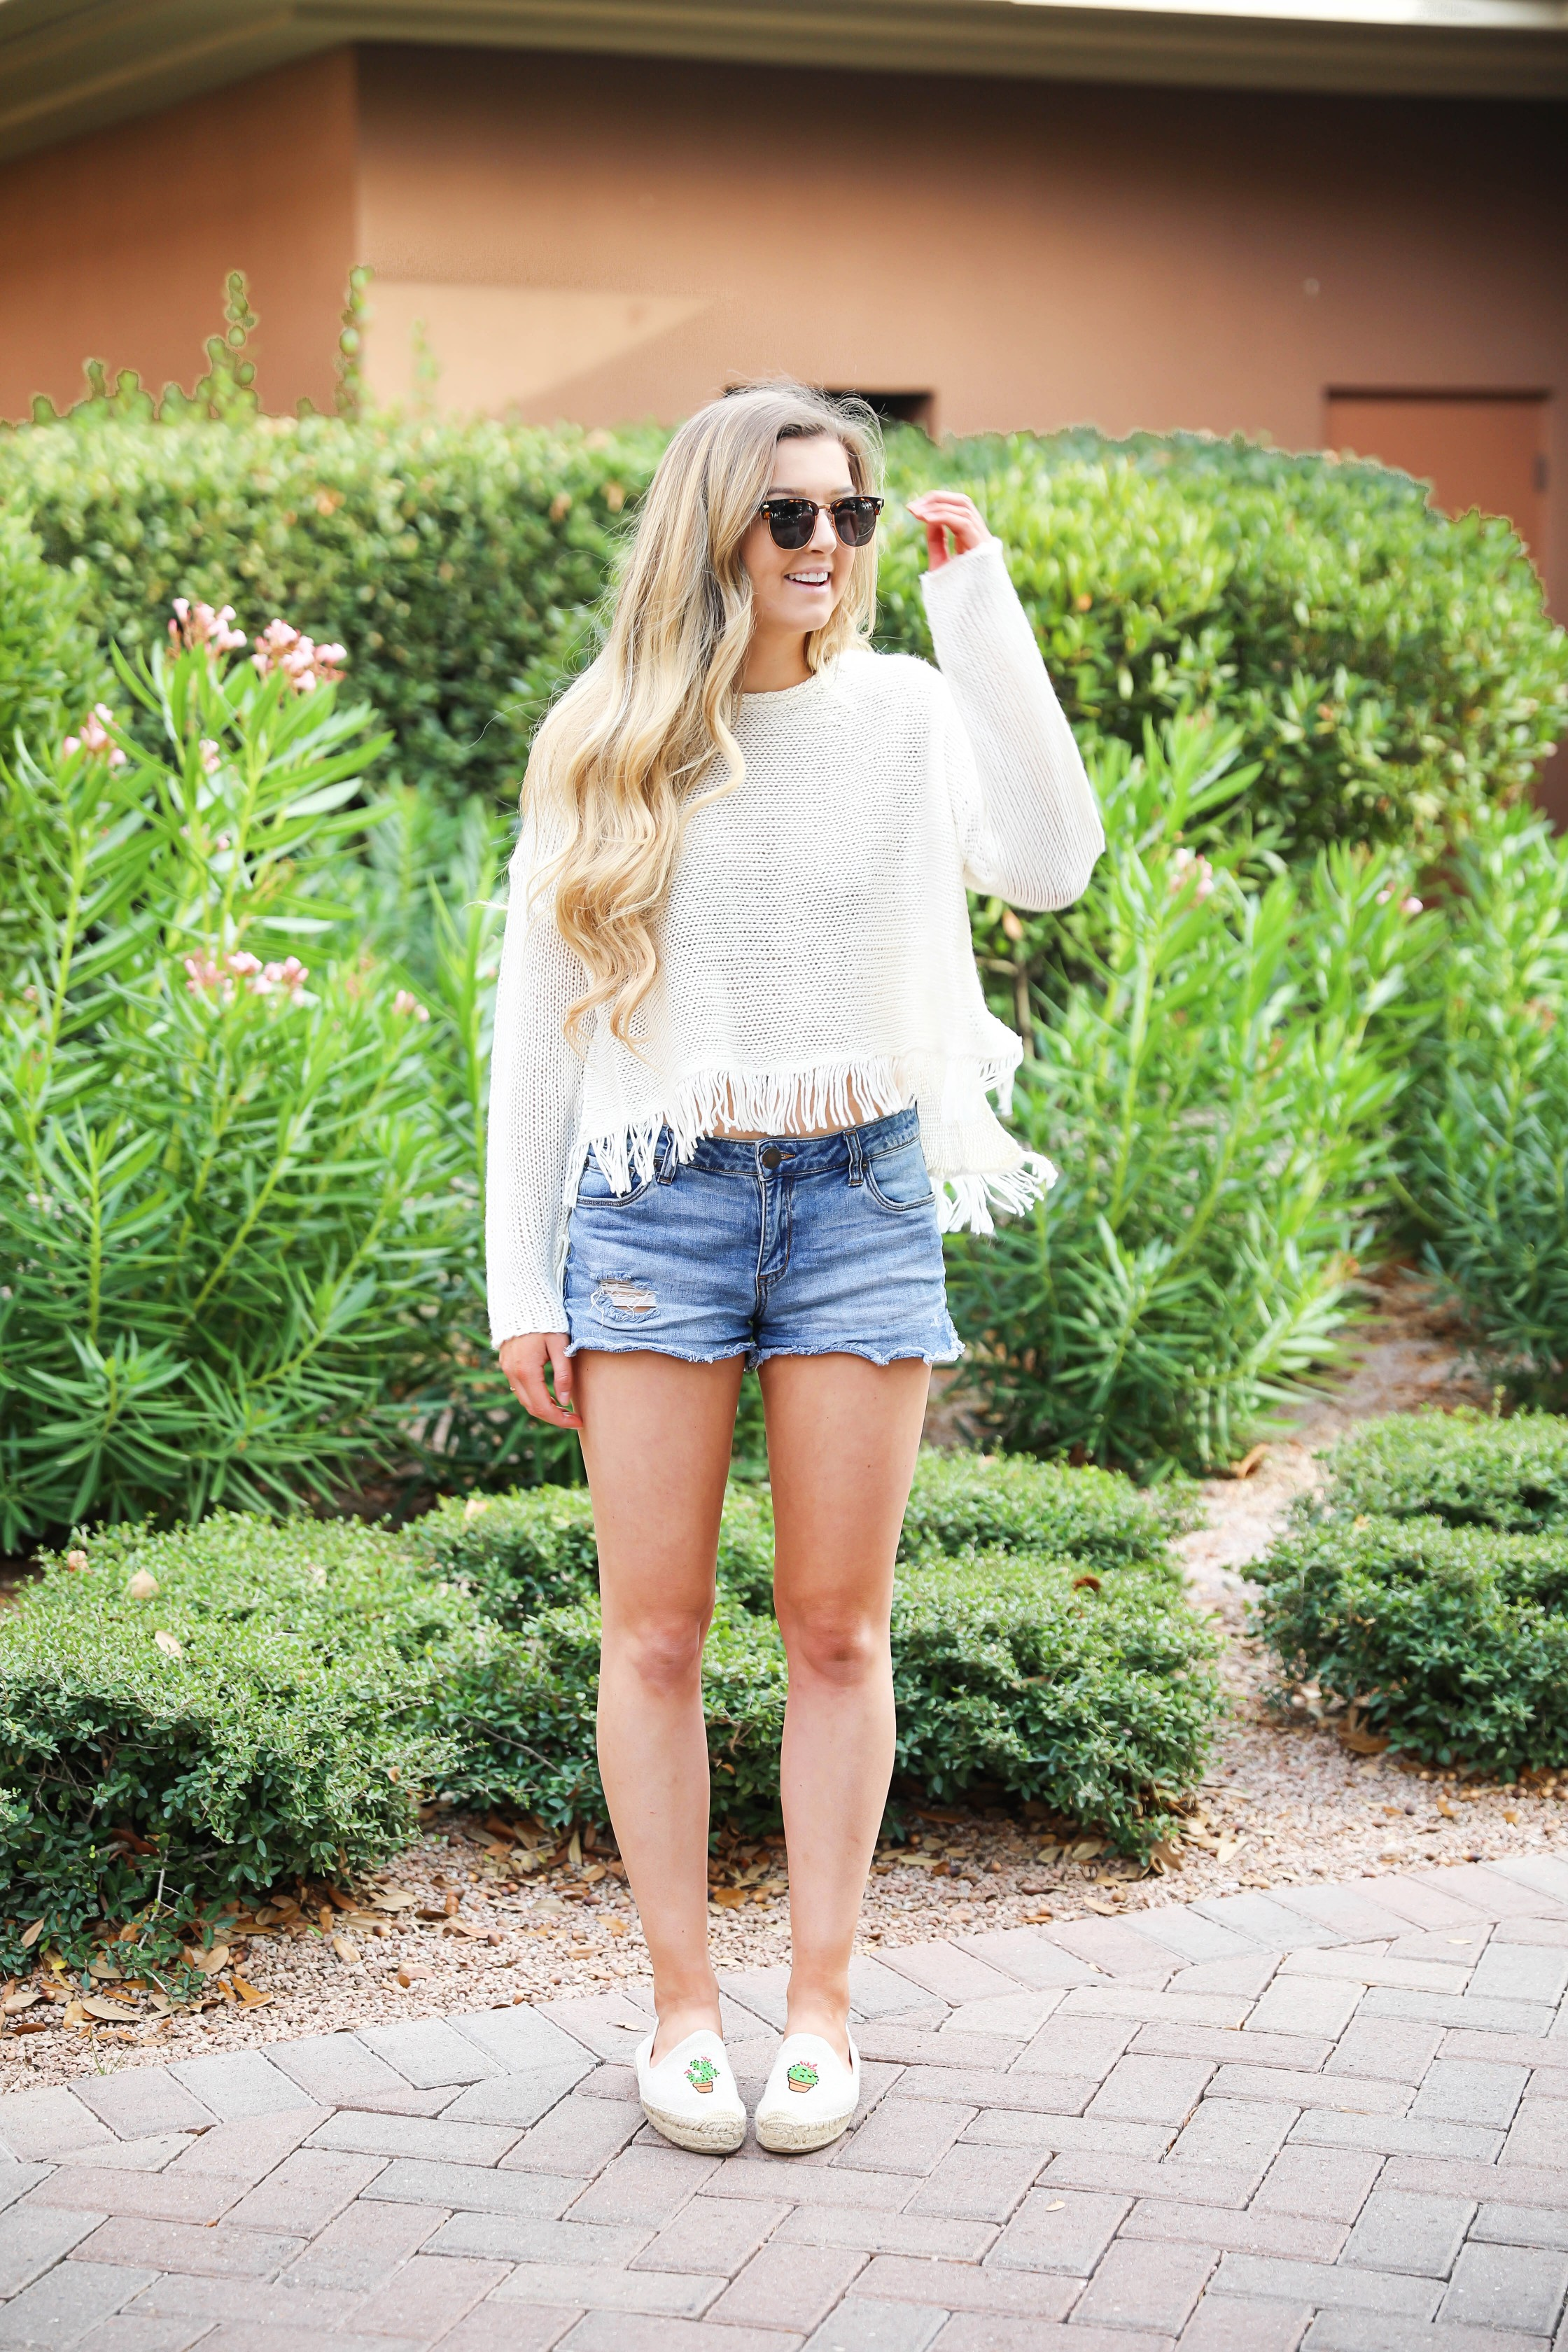 Fringe sweater from Show Me Your Mumu paired with my favorite catus espadrilles shoes! Perfect spring bring break outfit idea! Totally summer vibes on the blog right now! Details on fashion blogger daily dose of charm by lauren lindmark